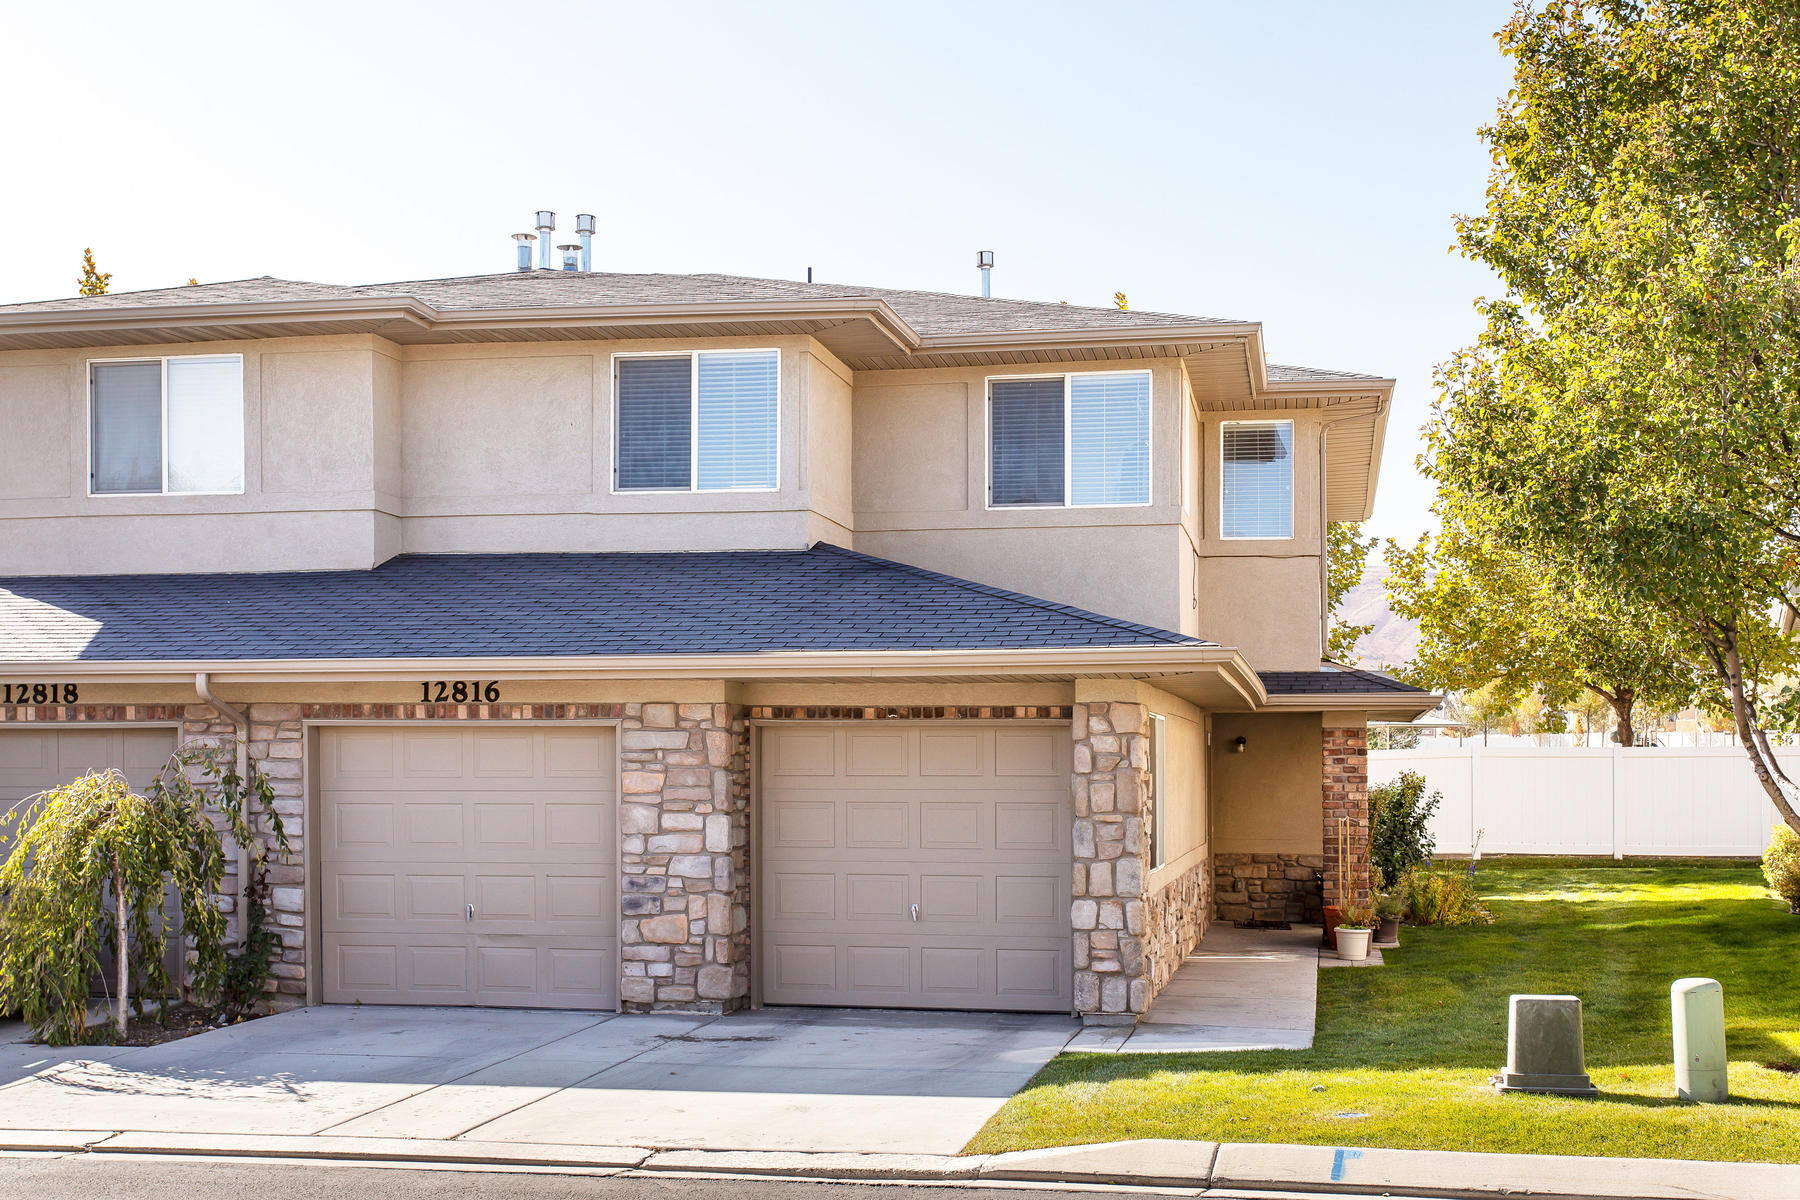 townhouses for Sale at Rare Aspen Springs Townhome 12816 S Timber Run Dr, Riverton, Utah 84096 United States